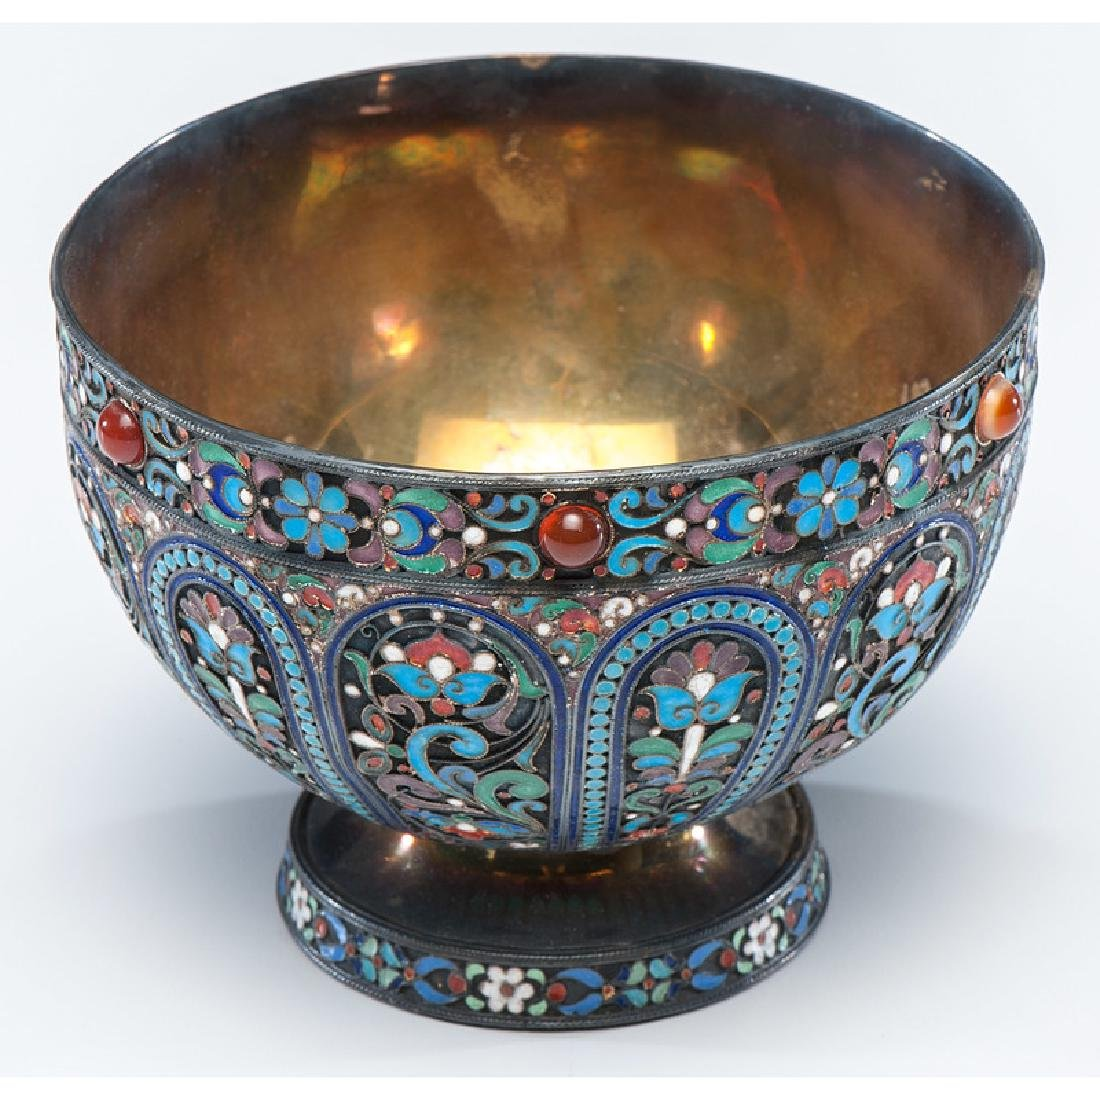 Russian Silver-Gilt and Enamel Footed Bowl - 2